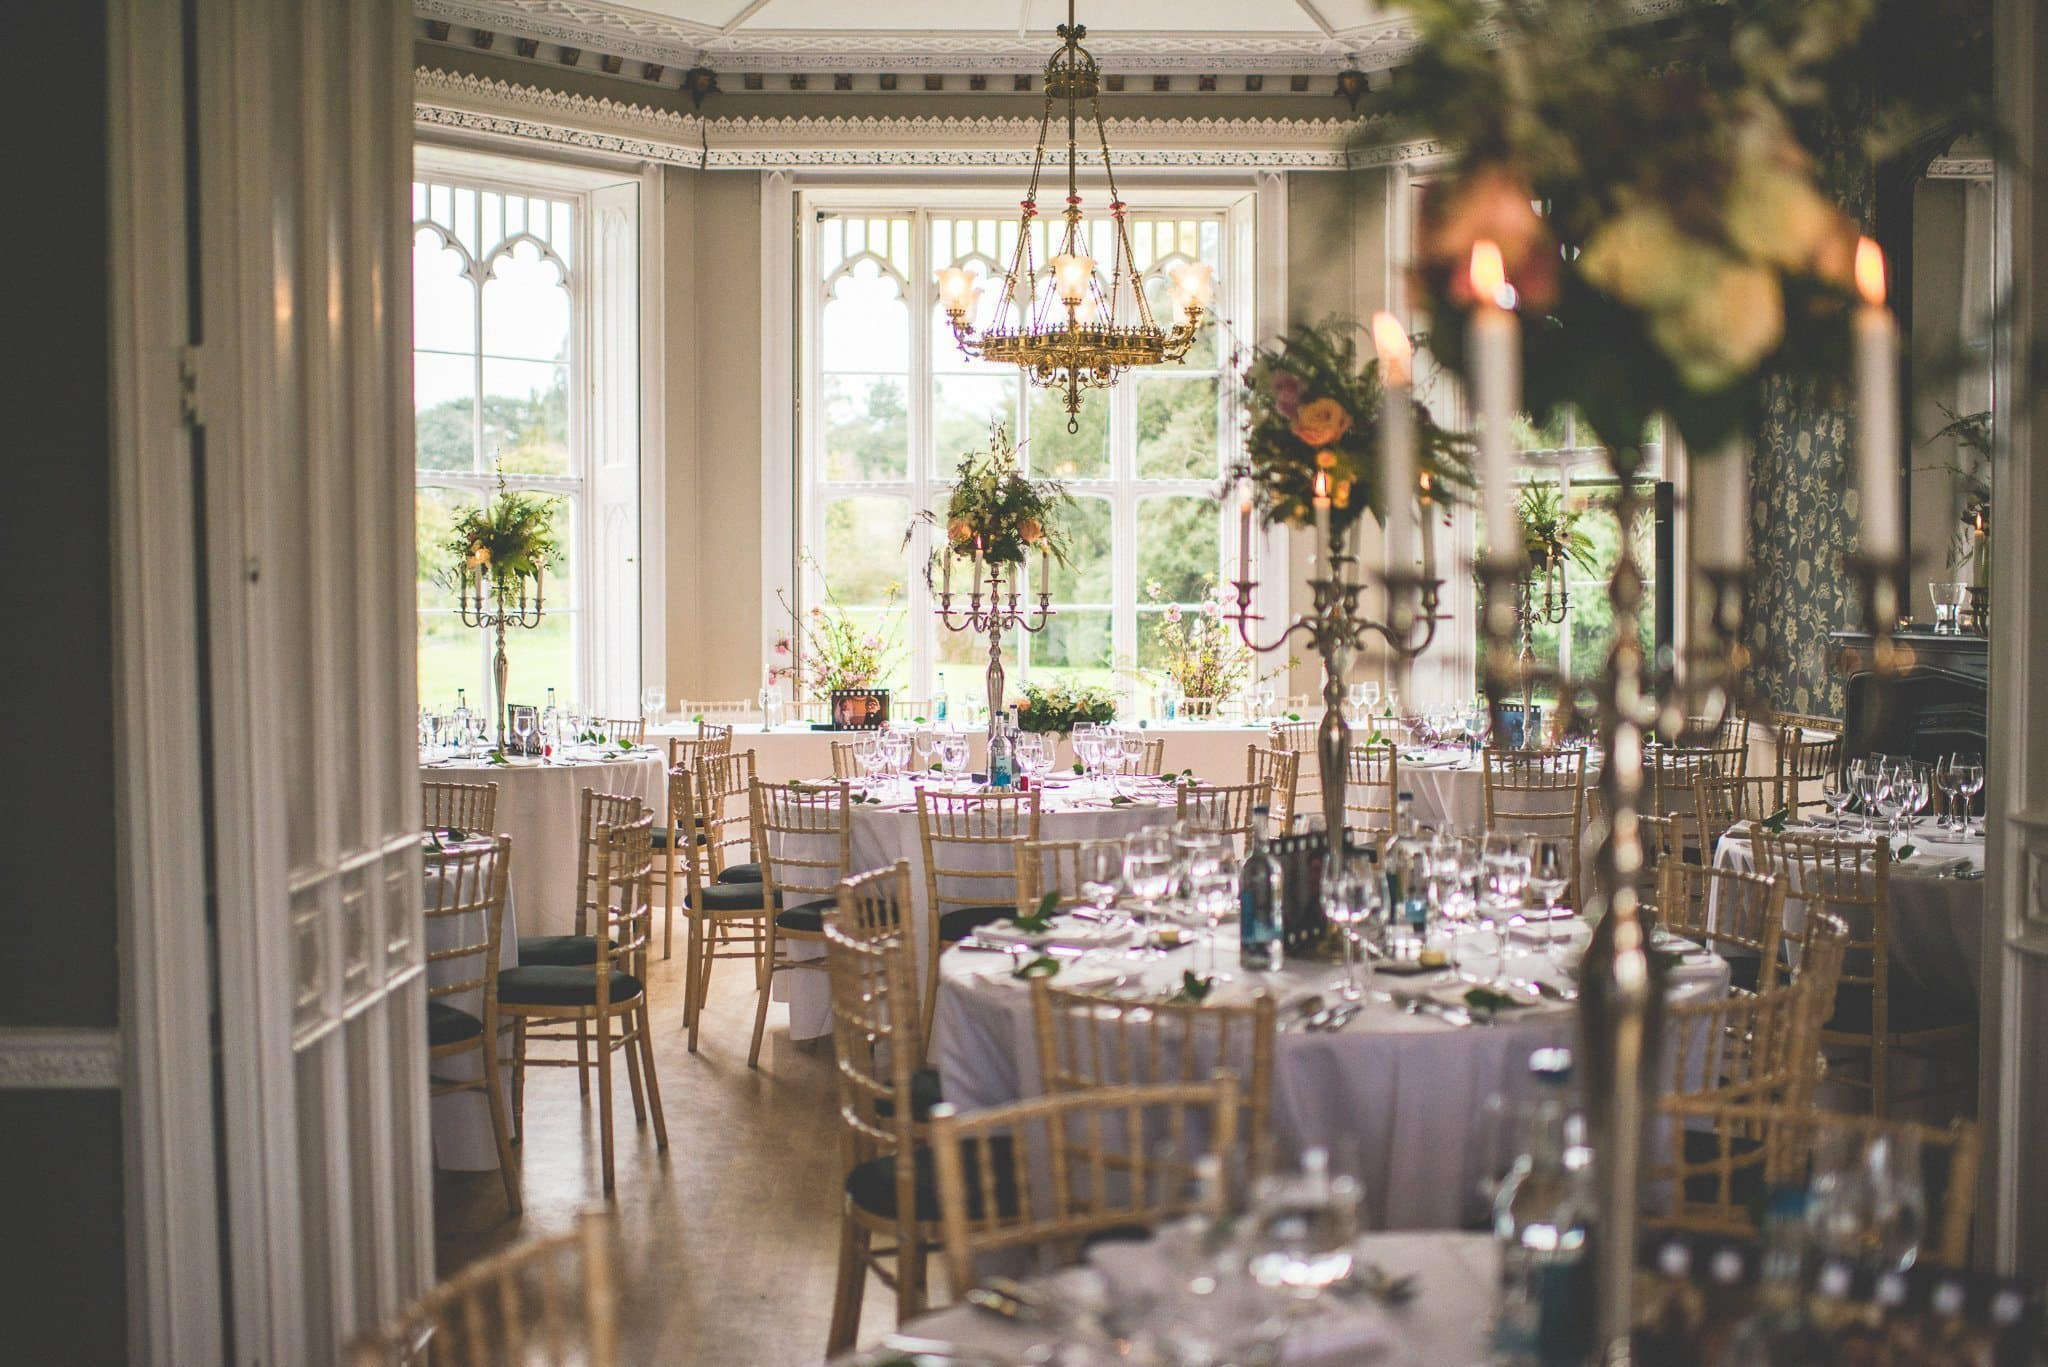 Nonsuch Mansion reception room decorated with candelabras & tall floral arrangements